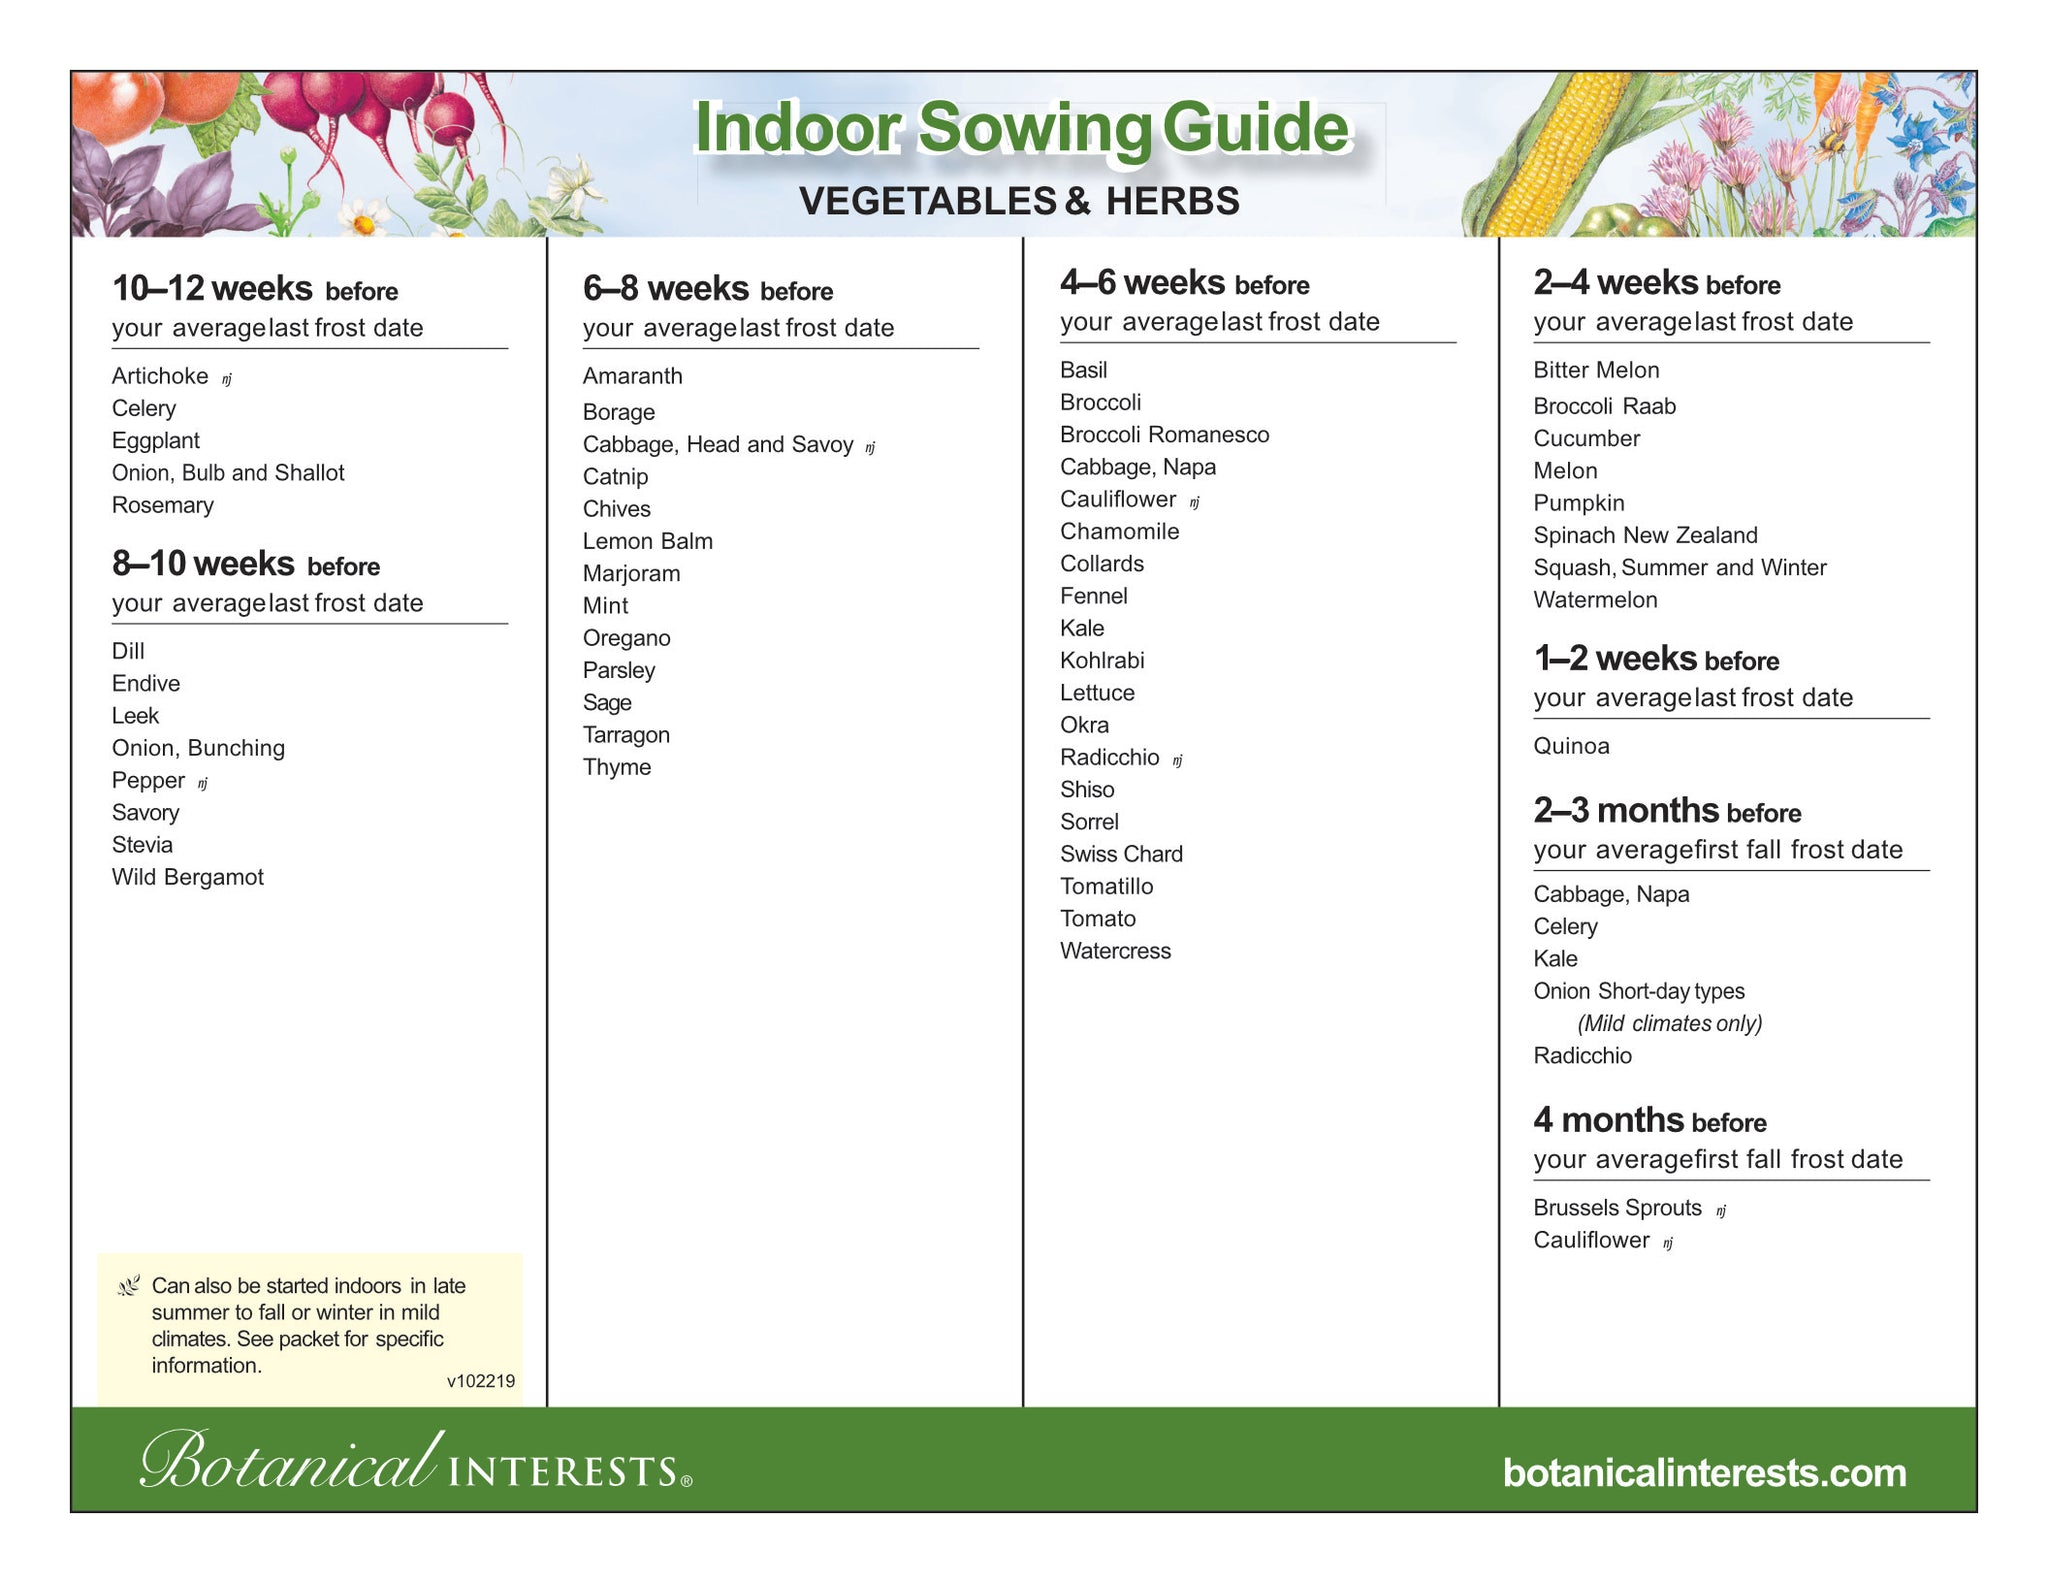 Herb and Vegetable Seed Sowing Guide